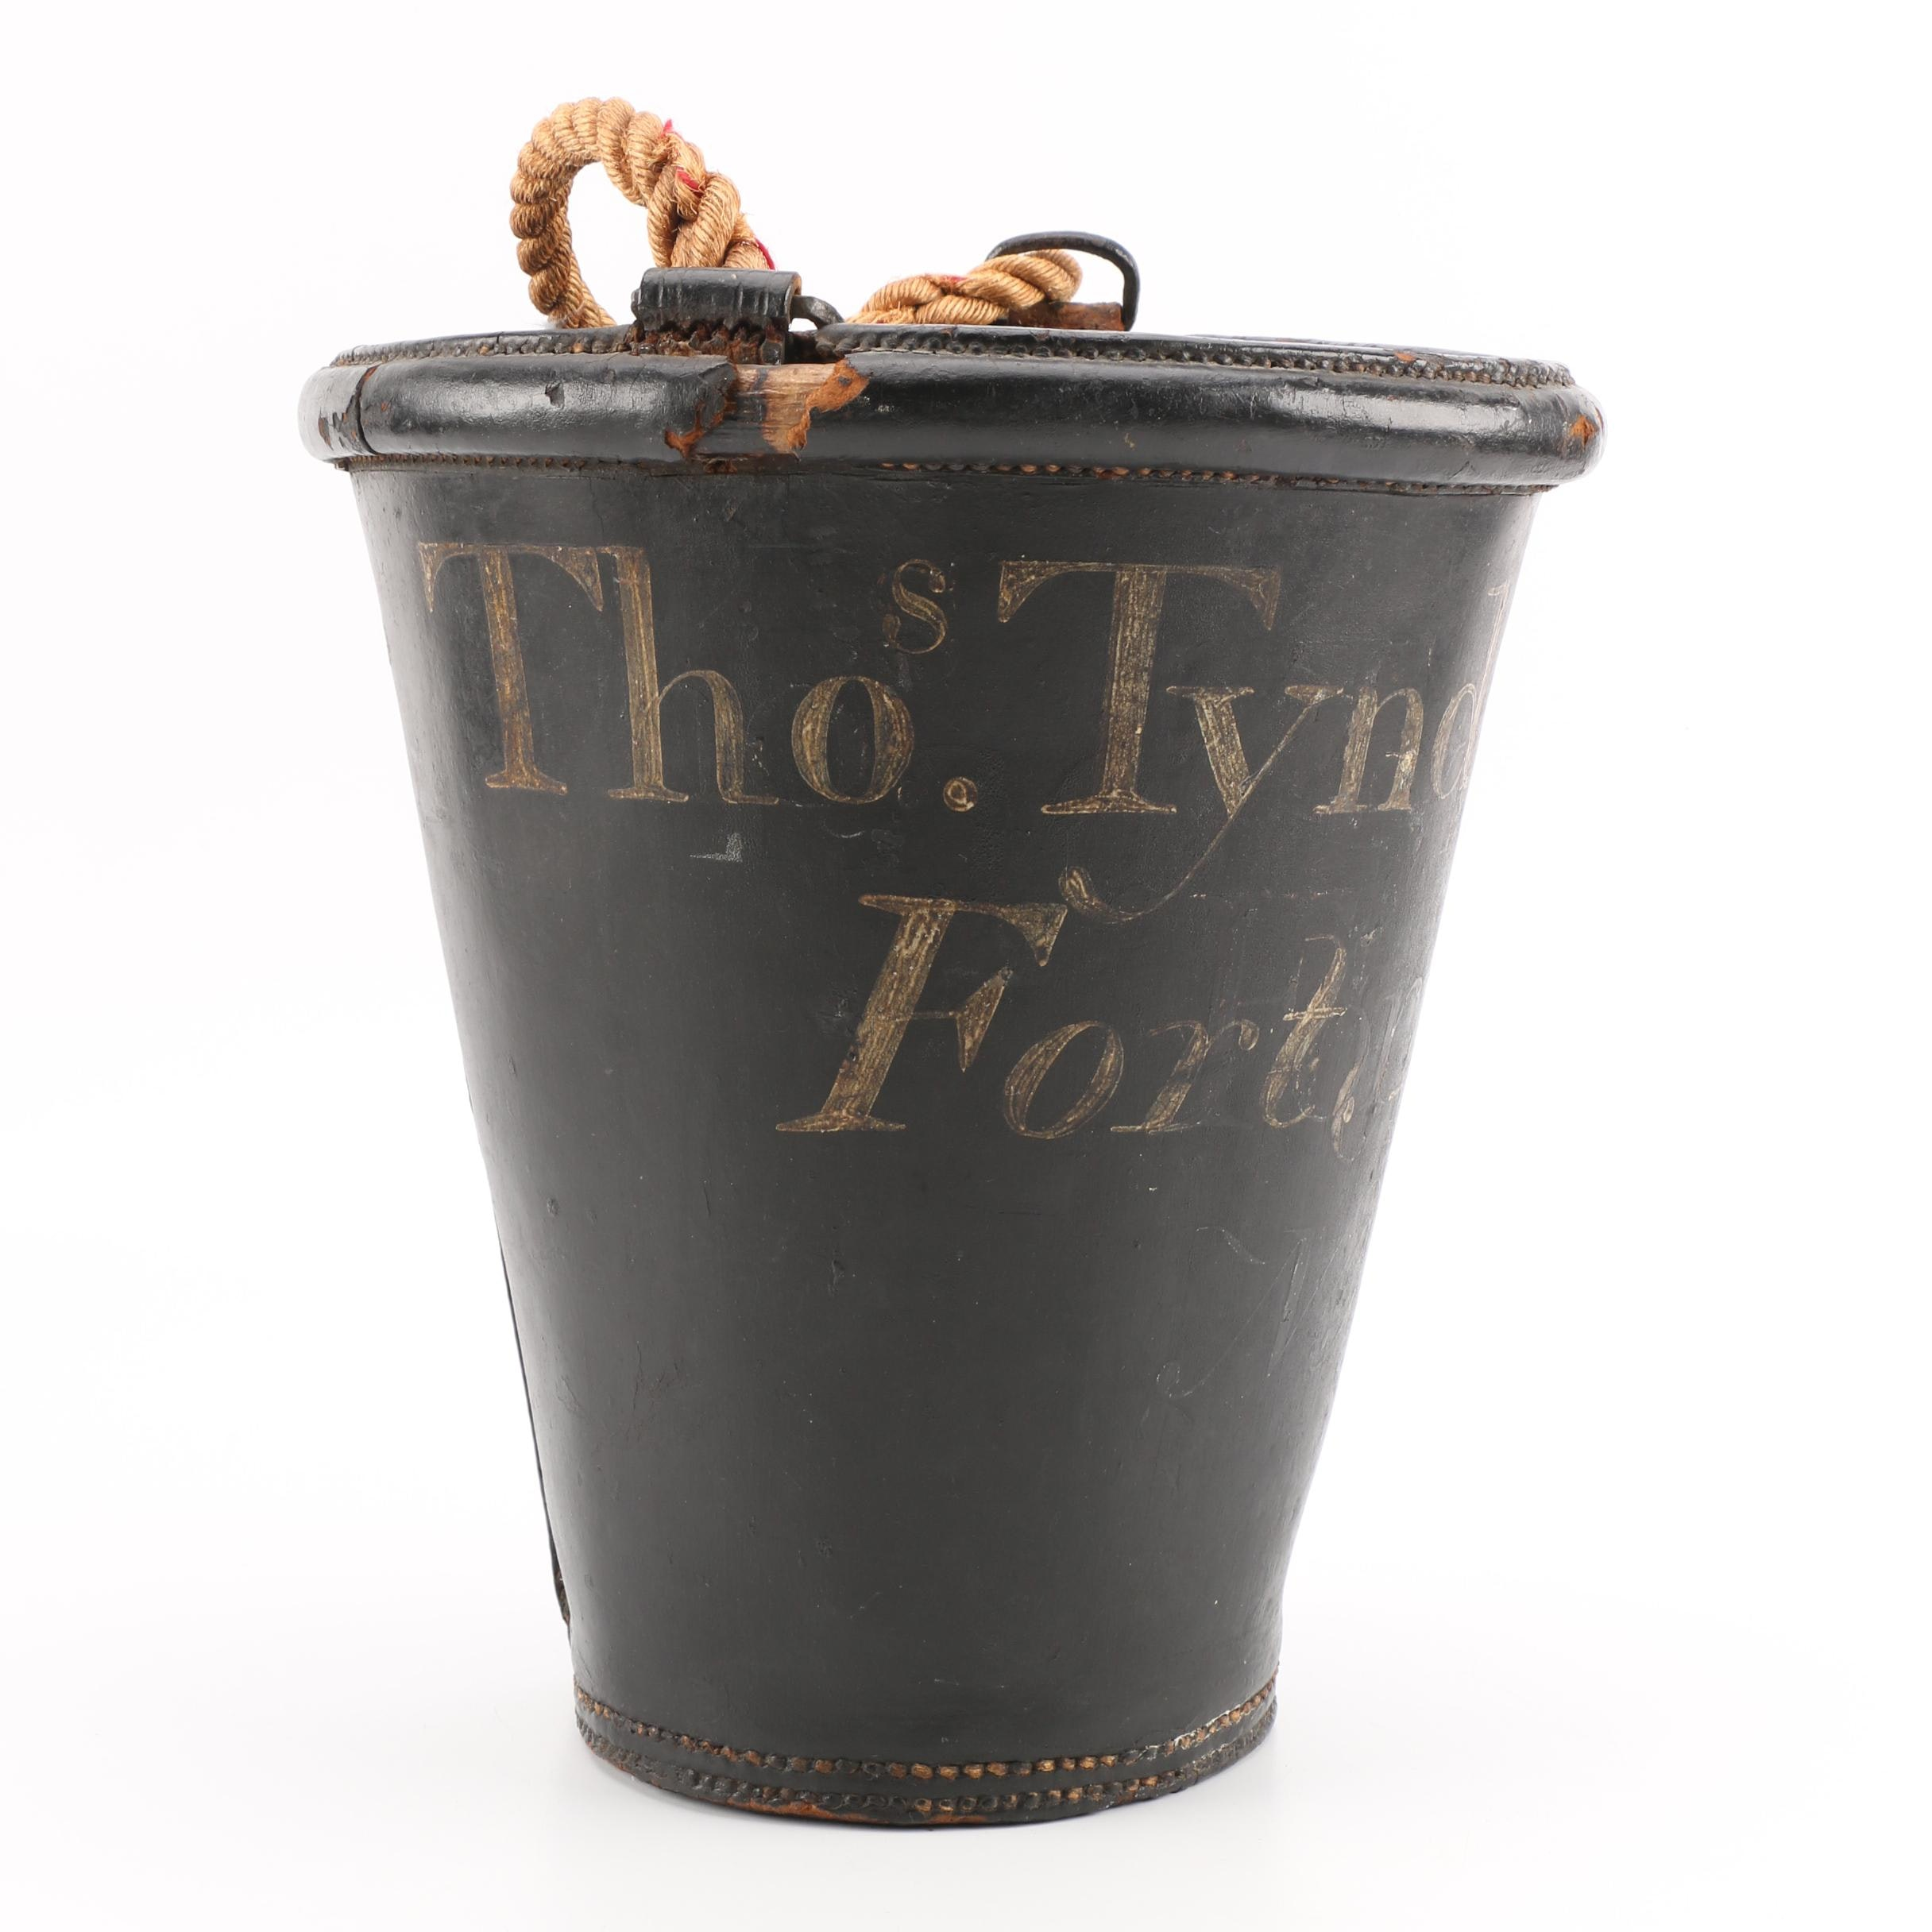 """Thos. Tyndall Esqr."" Black Leather Reproduction Fire Bucket with Rope Handle"